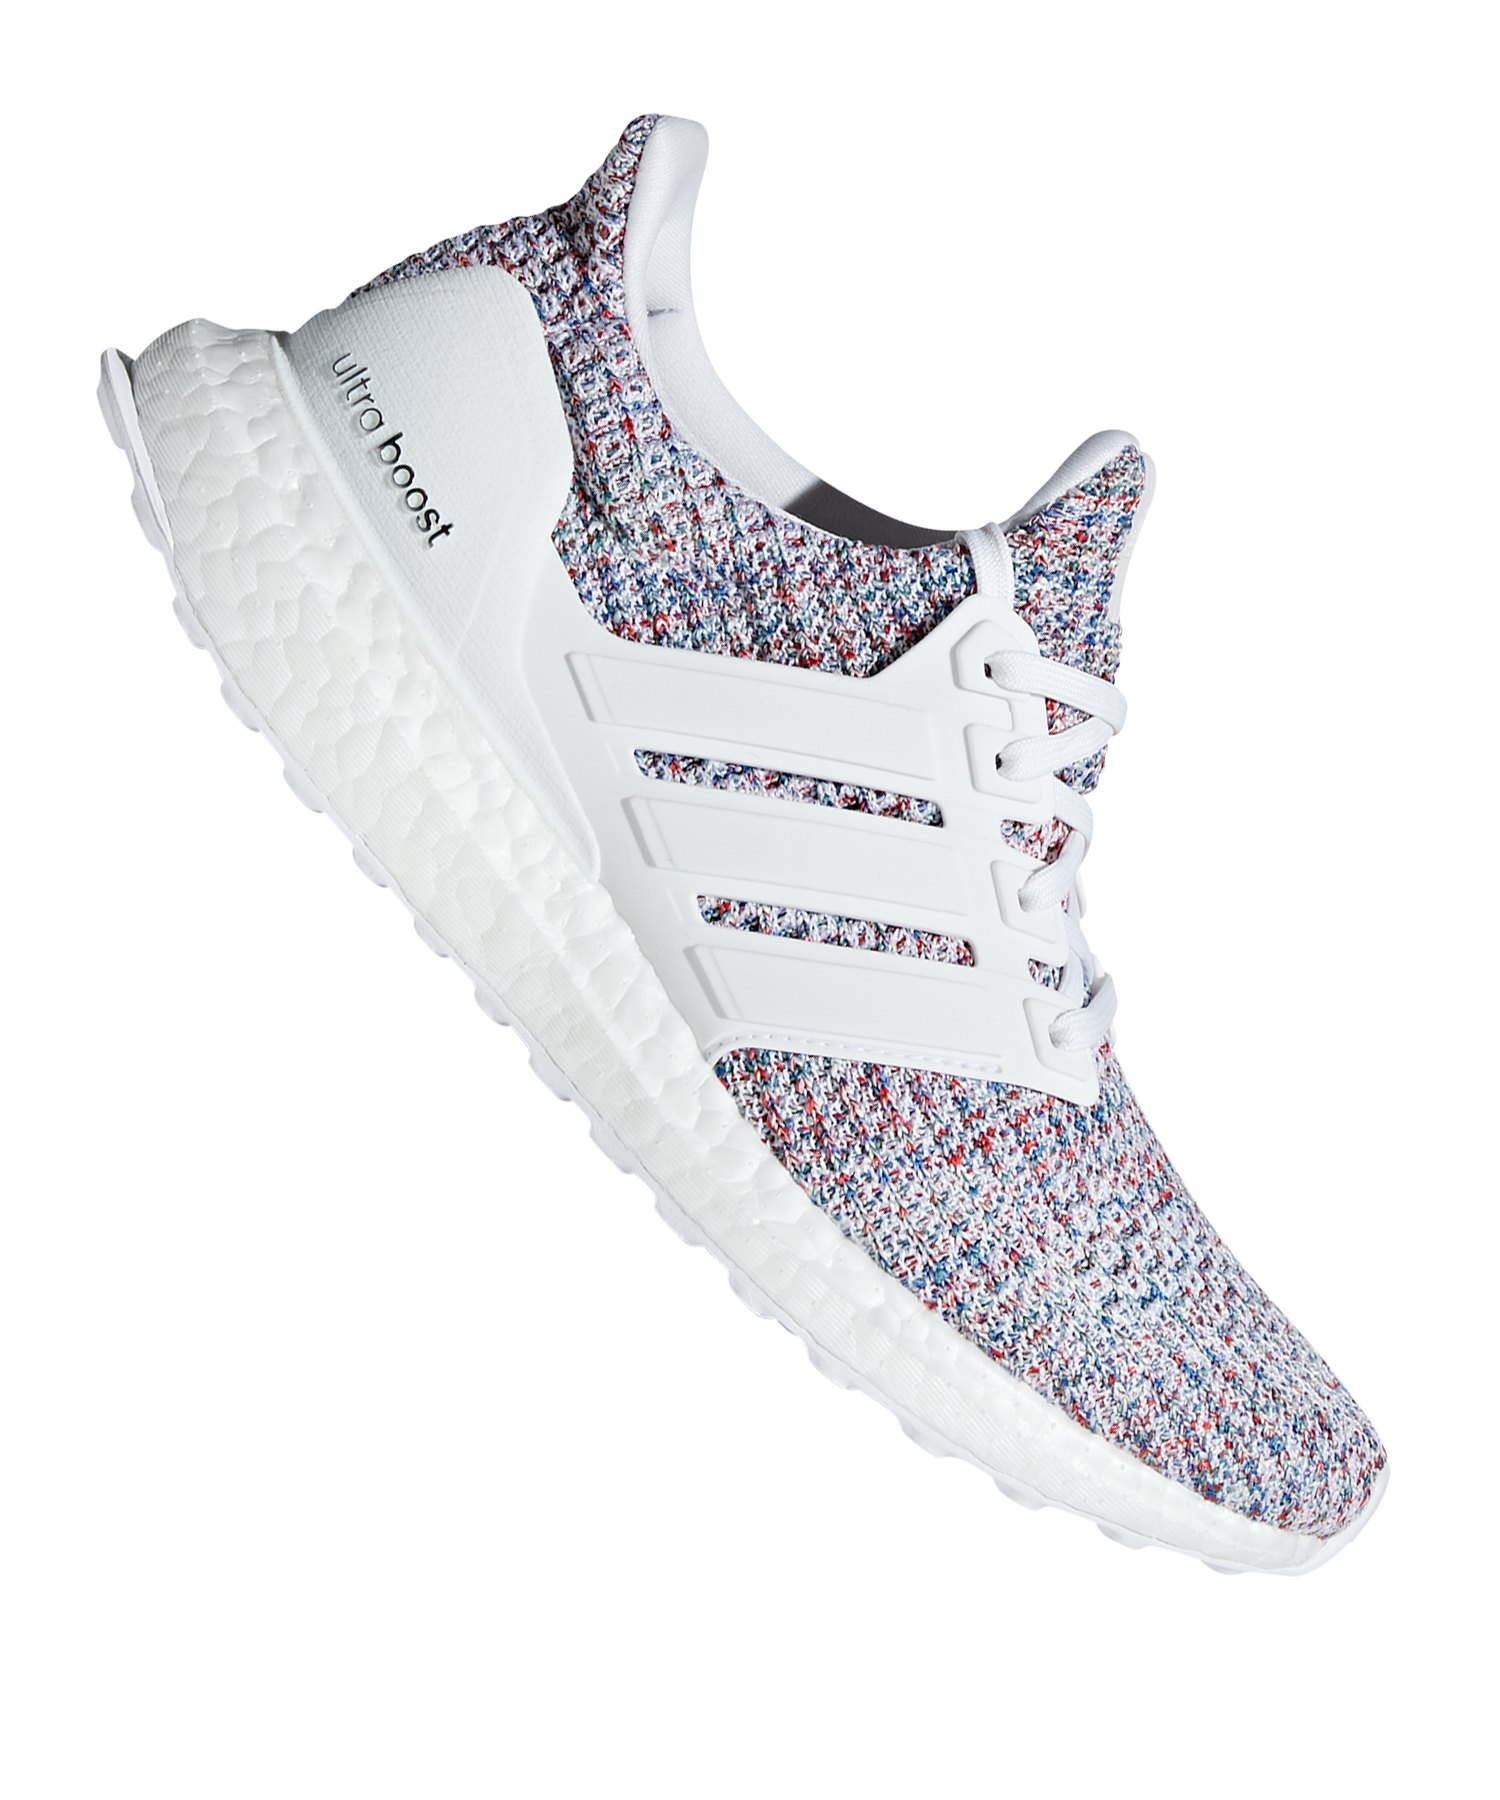 adidas Ultra Boost Running Damen Weiss Rot - weiss